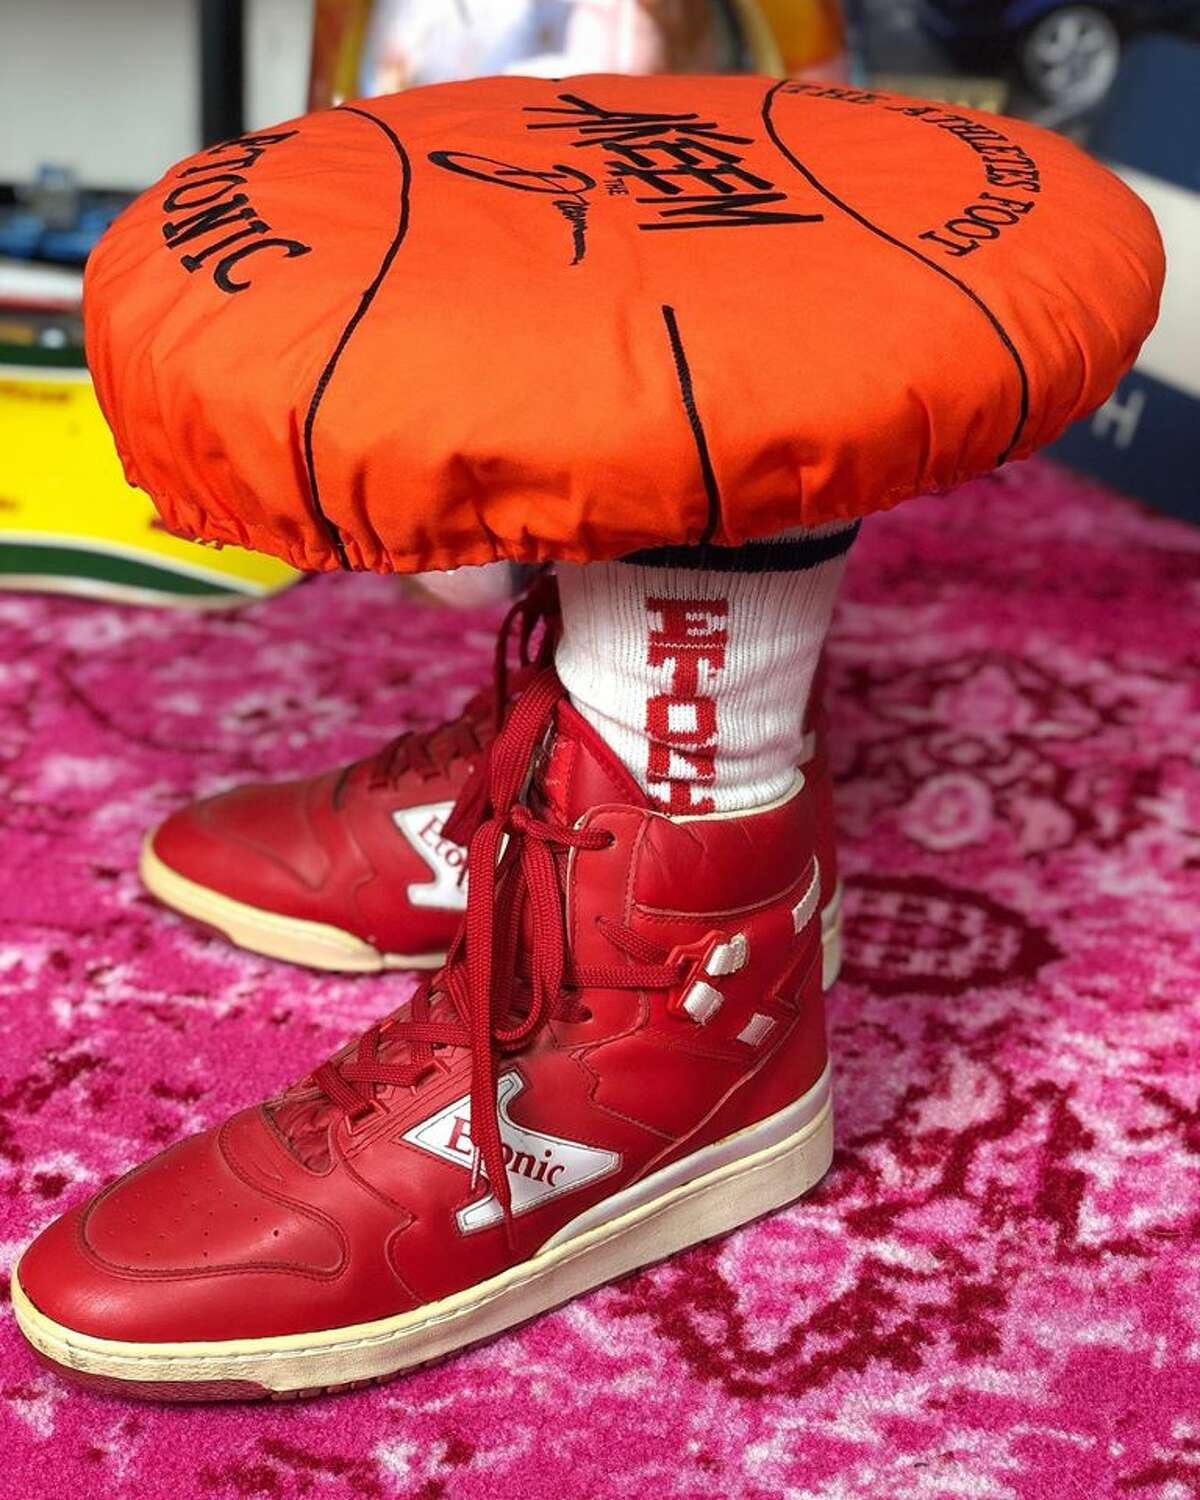 This stool was used as The Athlete's Foot in-store promotion for Etonic's Akeem the Dream sneakers in 1984.